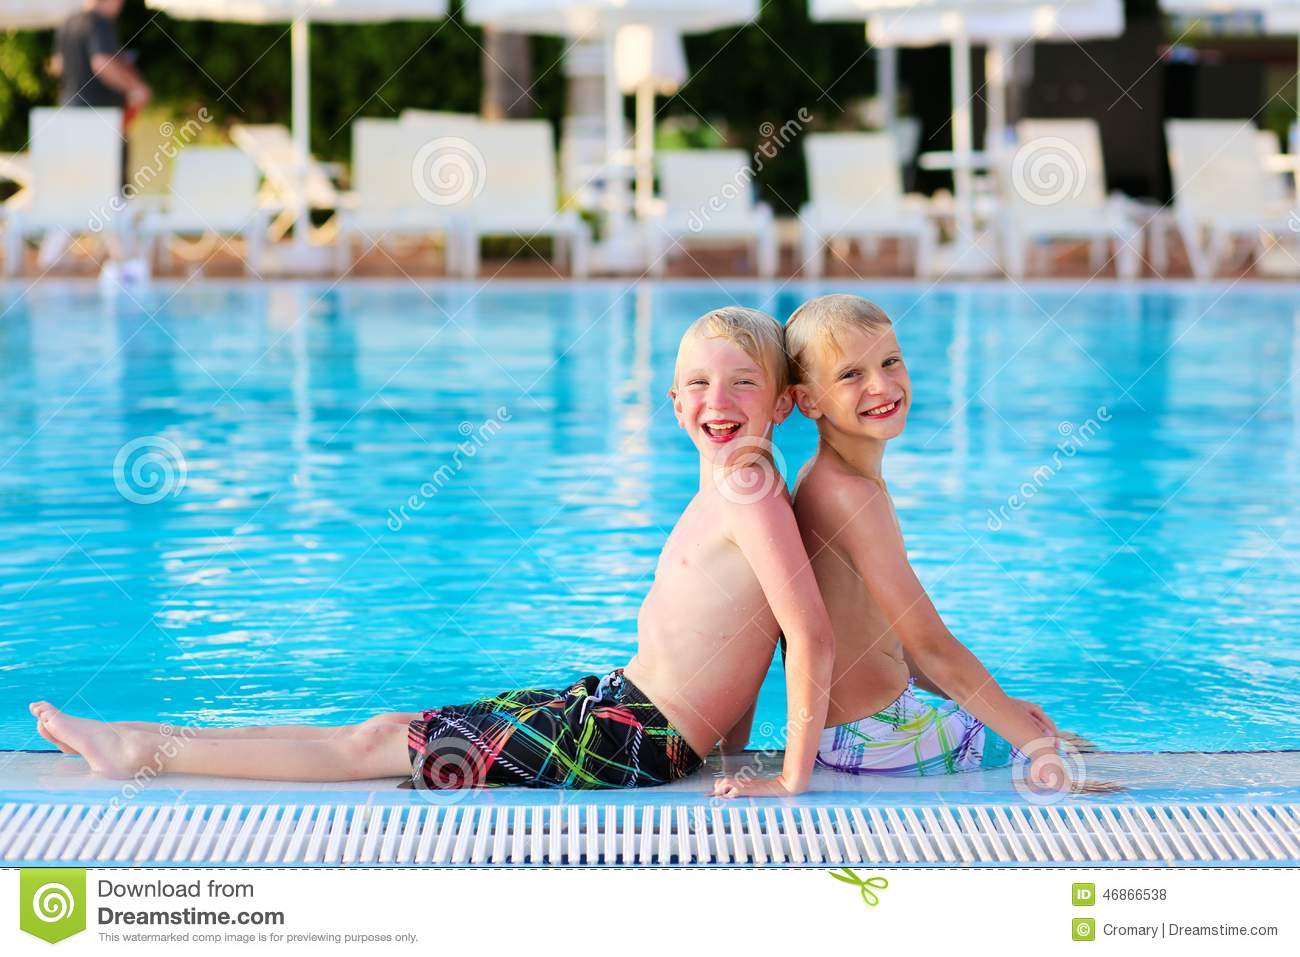 Permalink To Cute Boy In Speedos Near The Pool